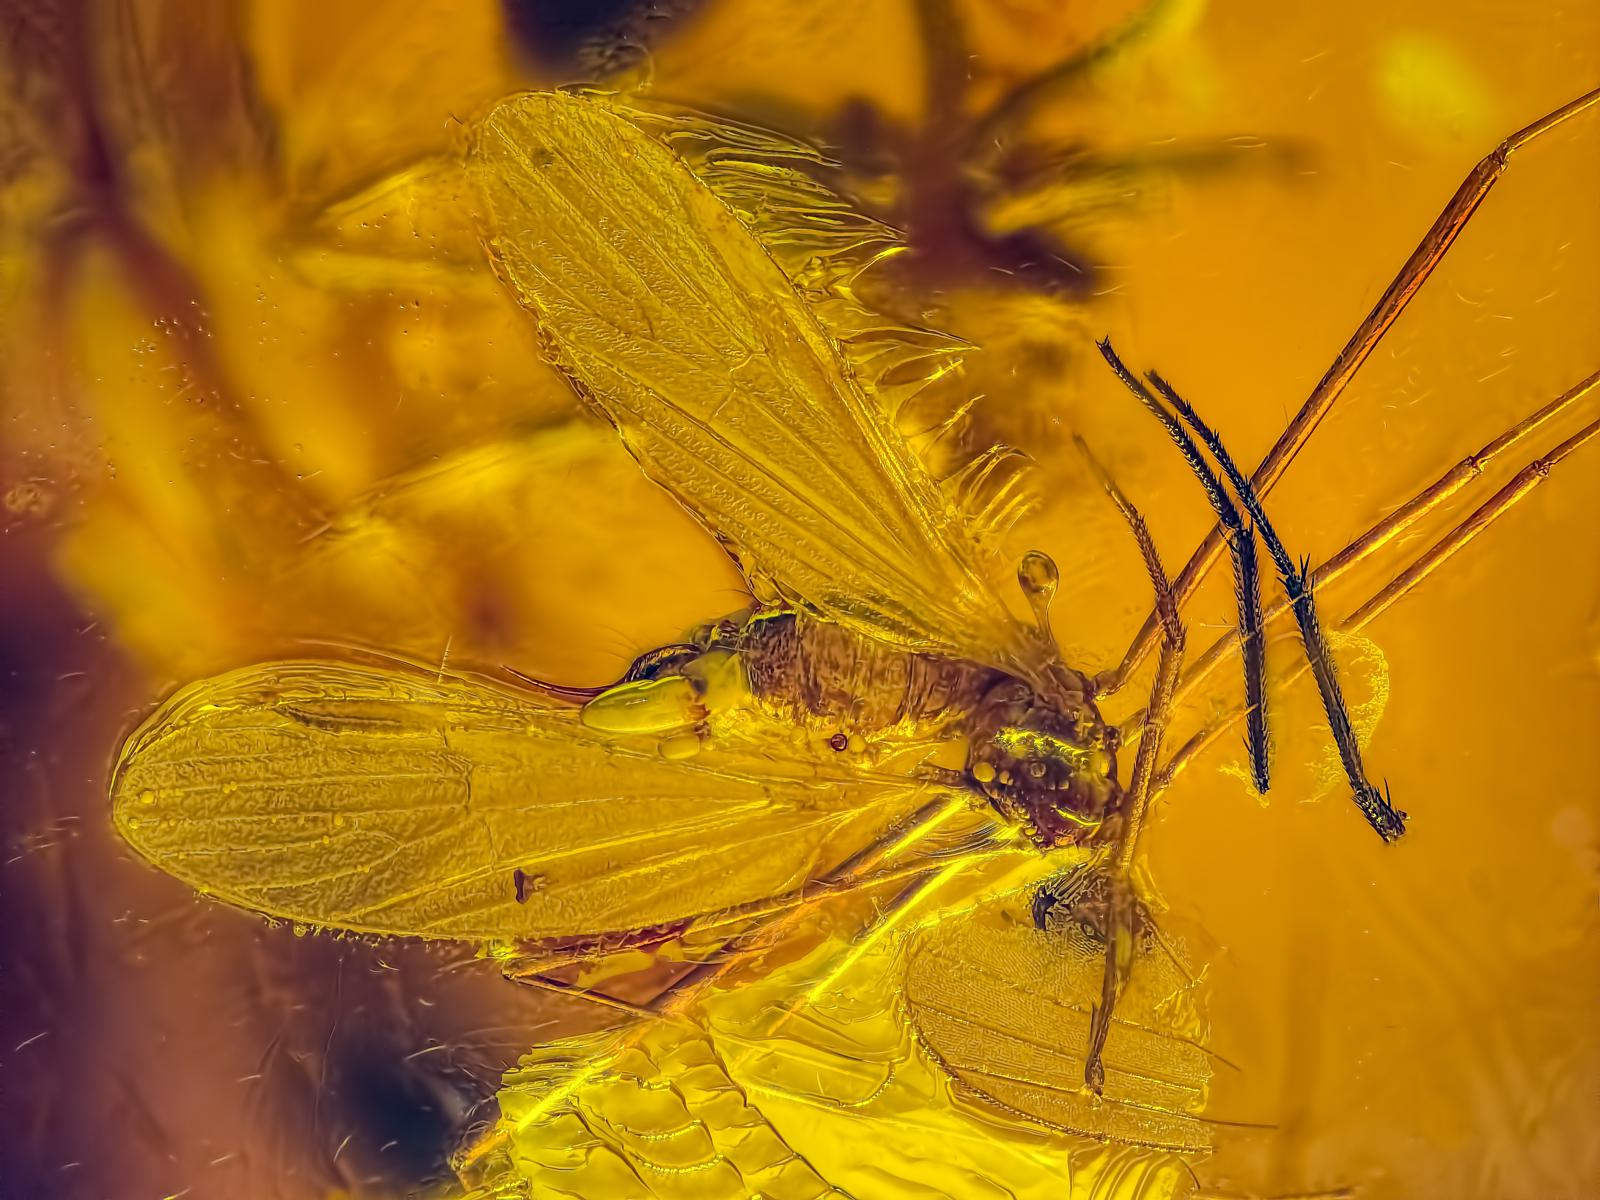 """01 """"Mosquito in Baltic amber"""" 55 million years old"""